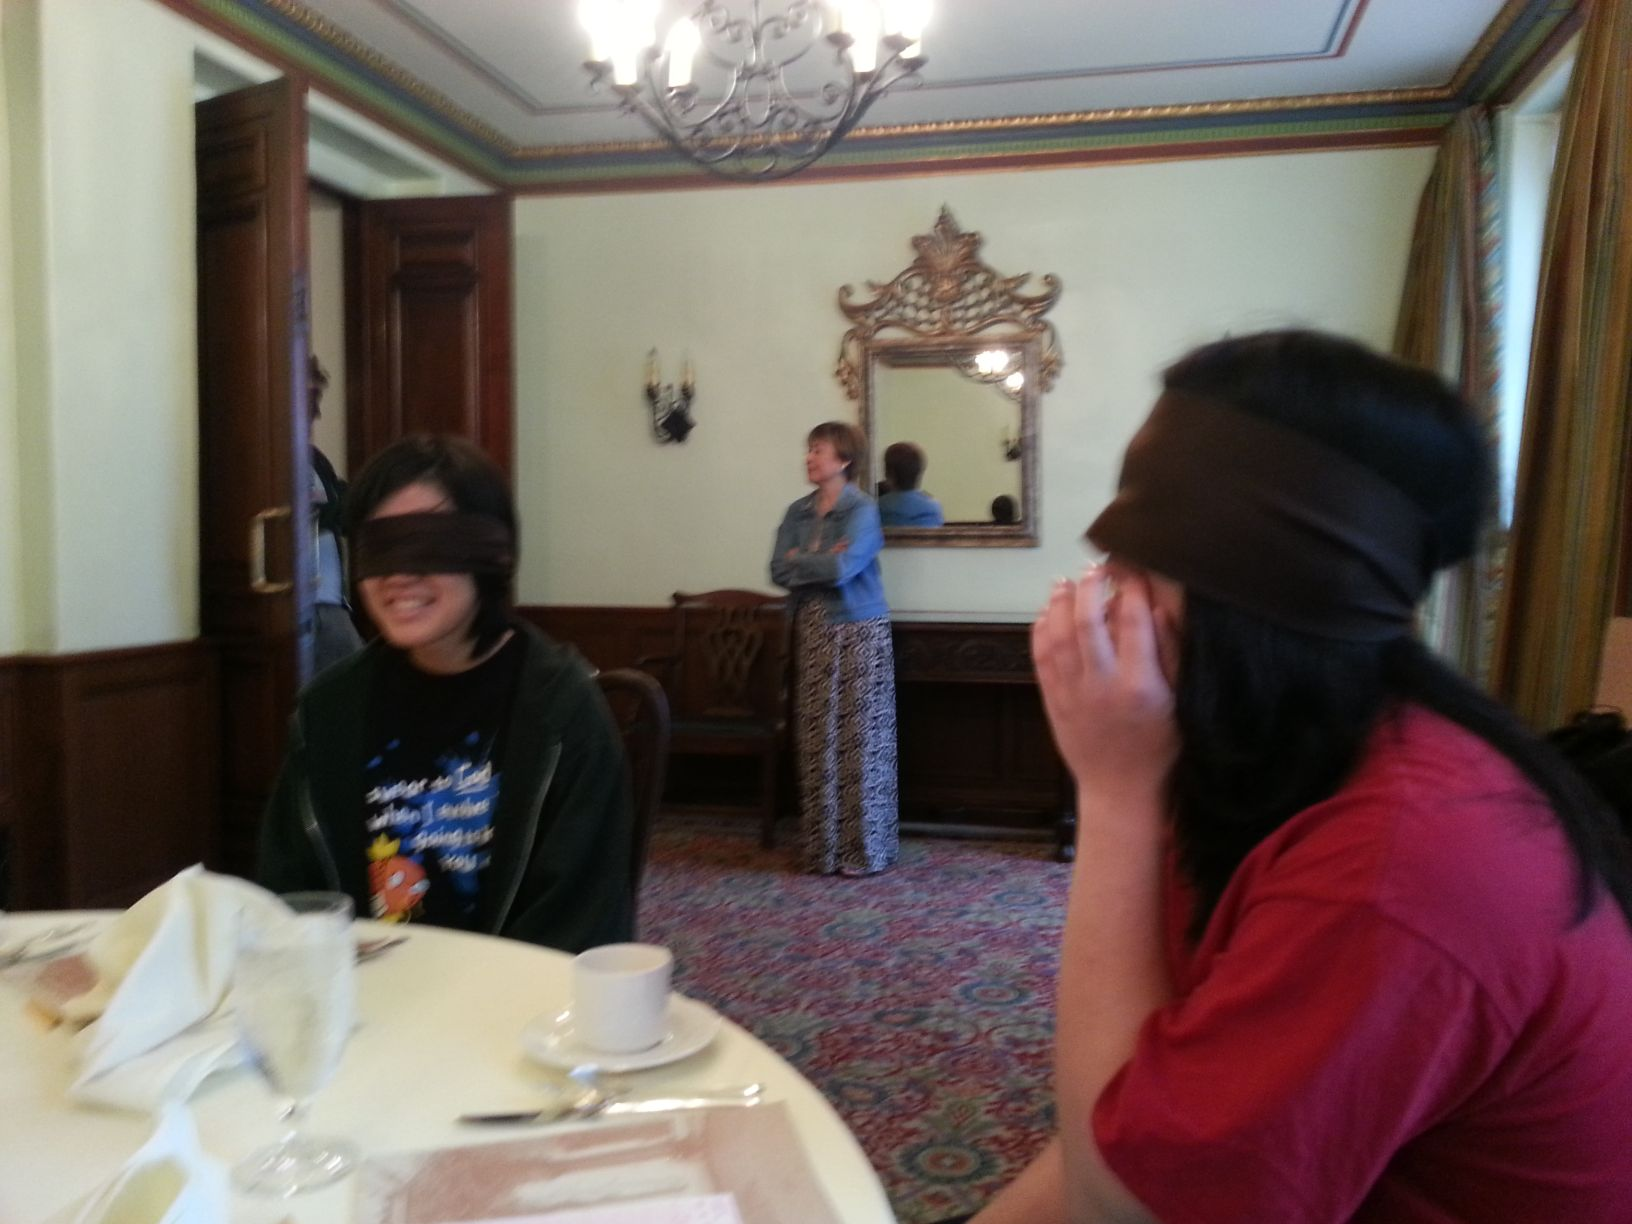 Still blindfolded, we're taken to a mysterious room and a mysterious table.